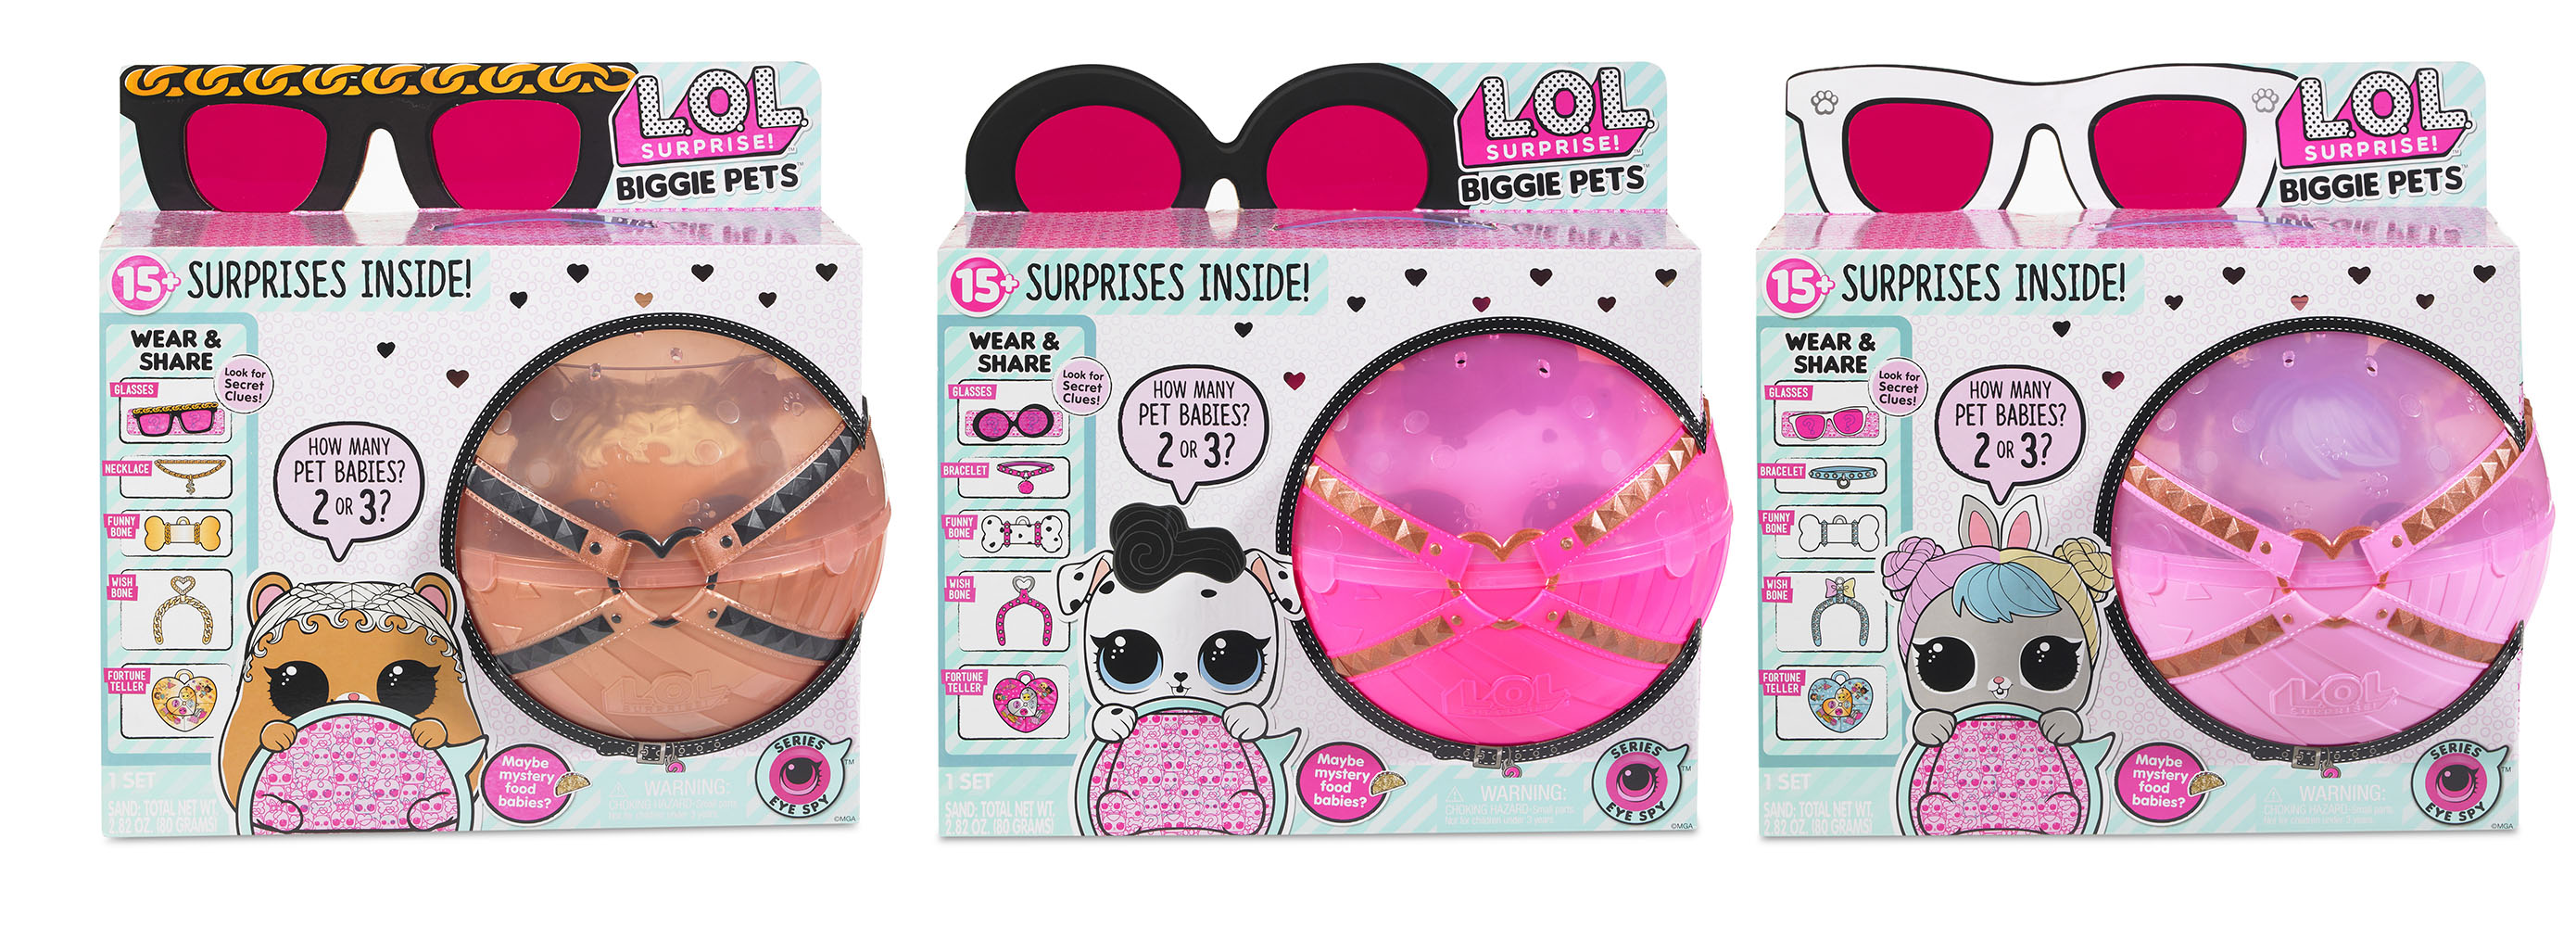 L.O.L. Surprise! - Biggie Pet assortis